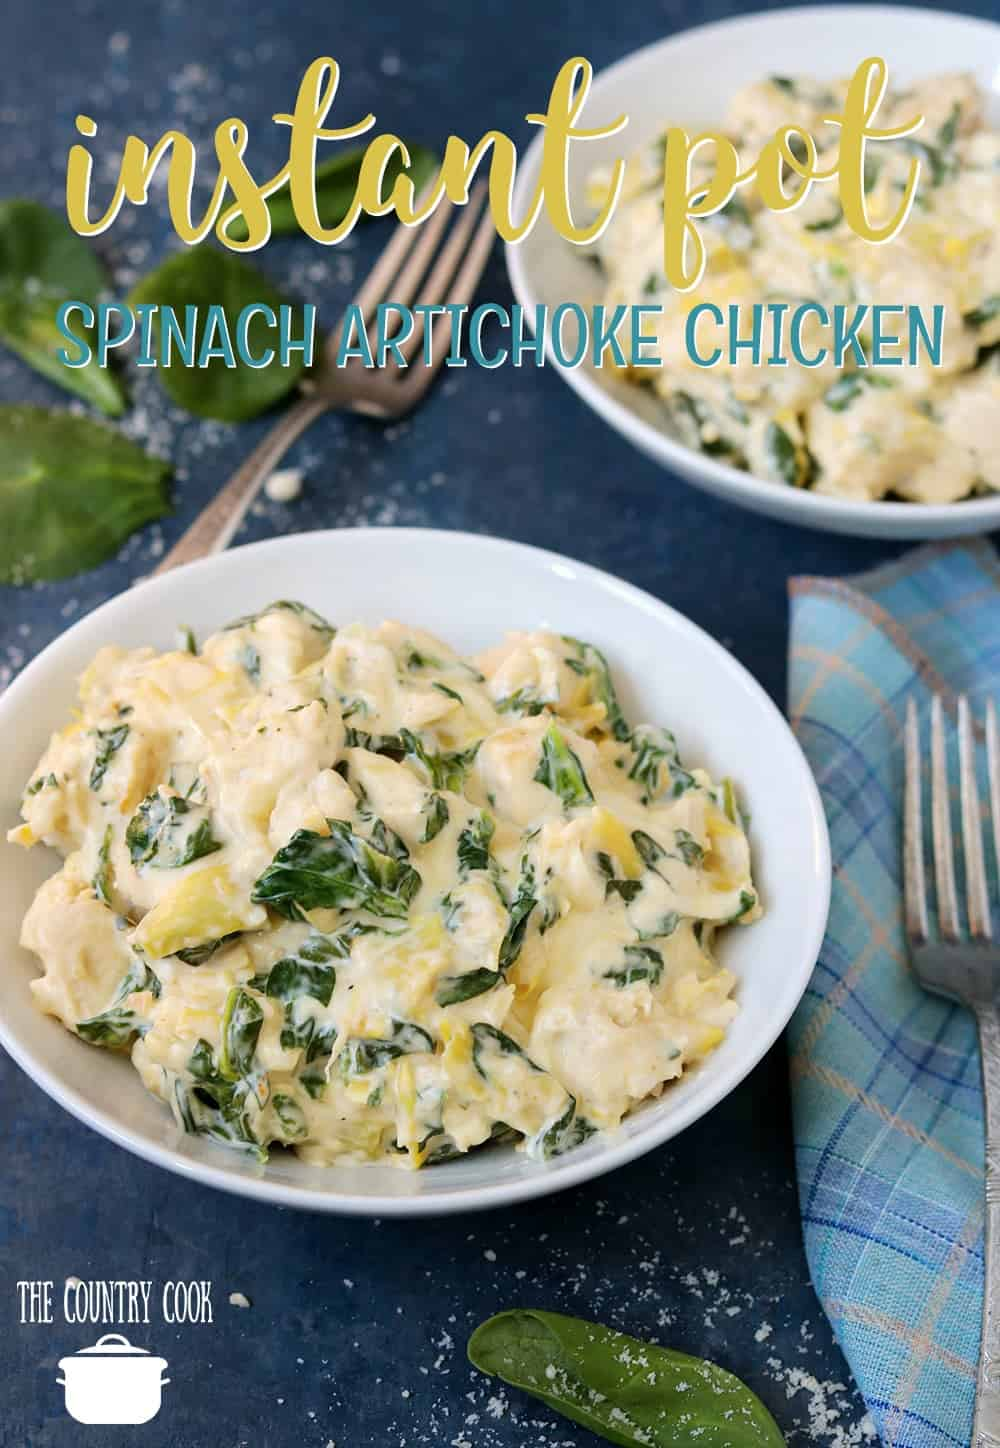 Instant Pot Spinach Artichoke Chicken recipe from The Country Cook #instantpot #pressurecooker #chicken #chickenbreast #lowcarb #easy #dinner #recipes #easy #ideas #spinach